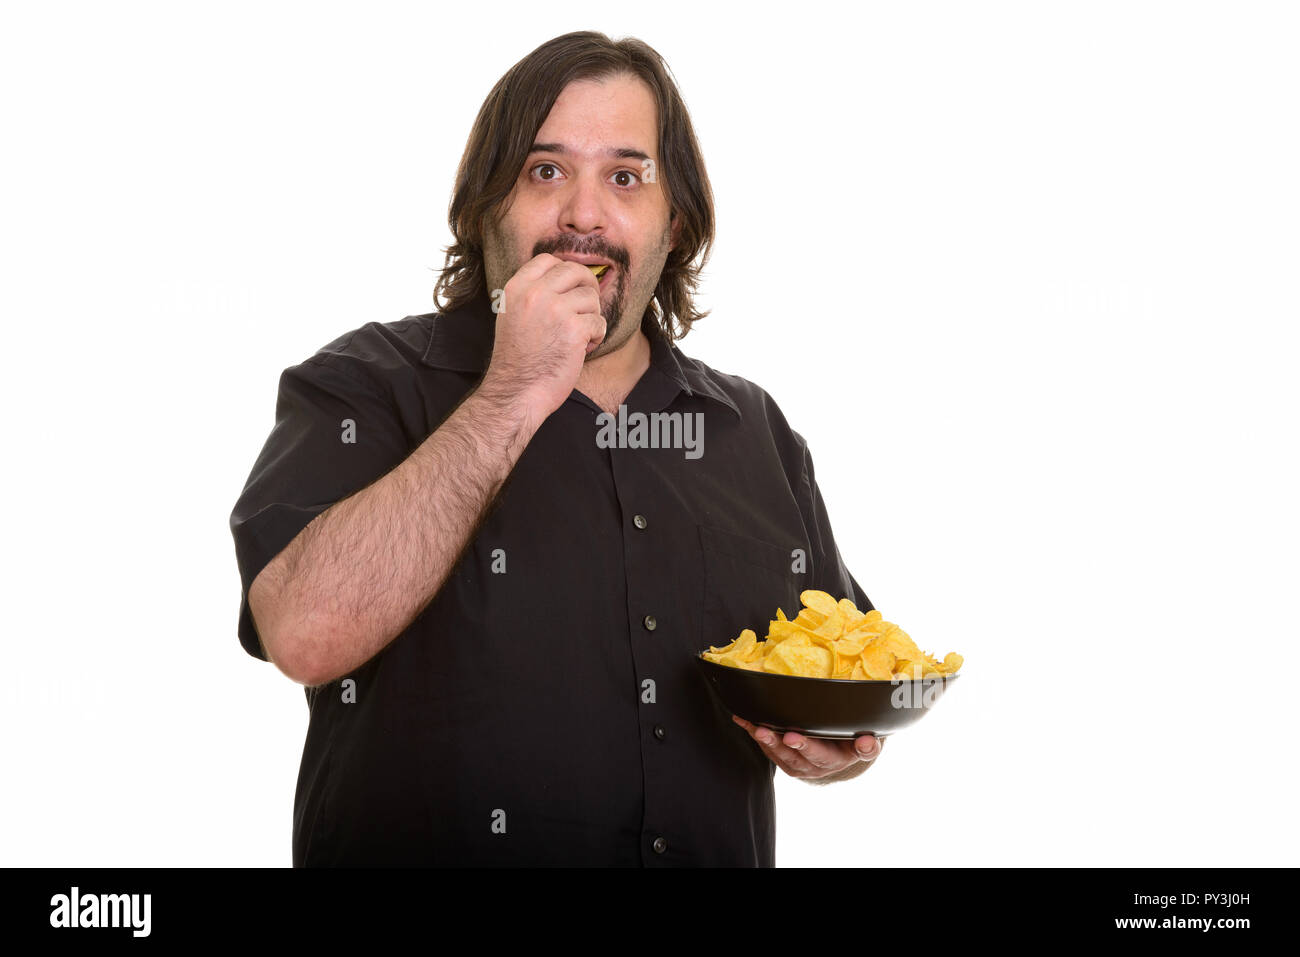 Fat Caucasian man eating and holding bowl of chips - Stock Image